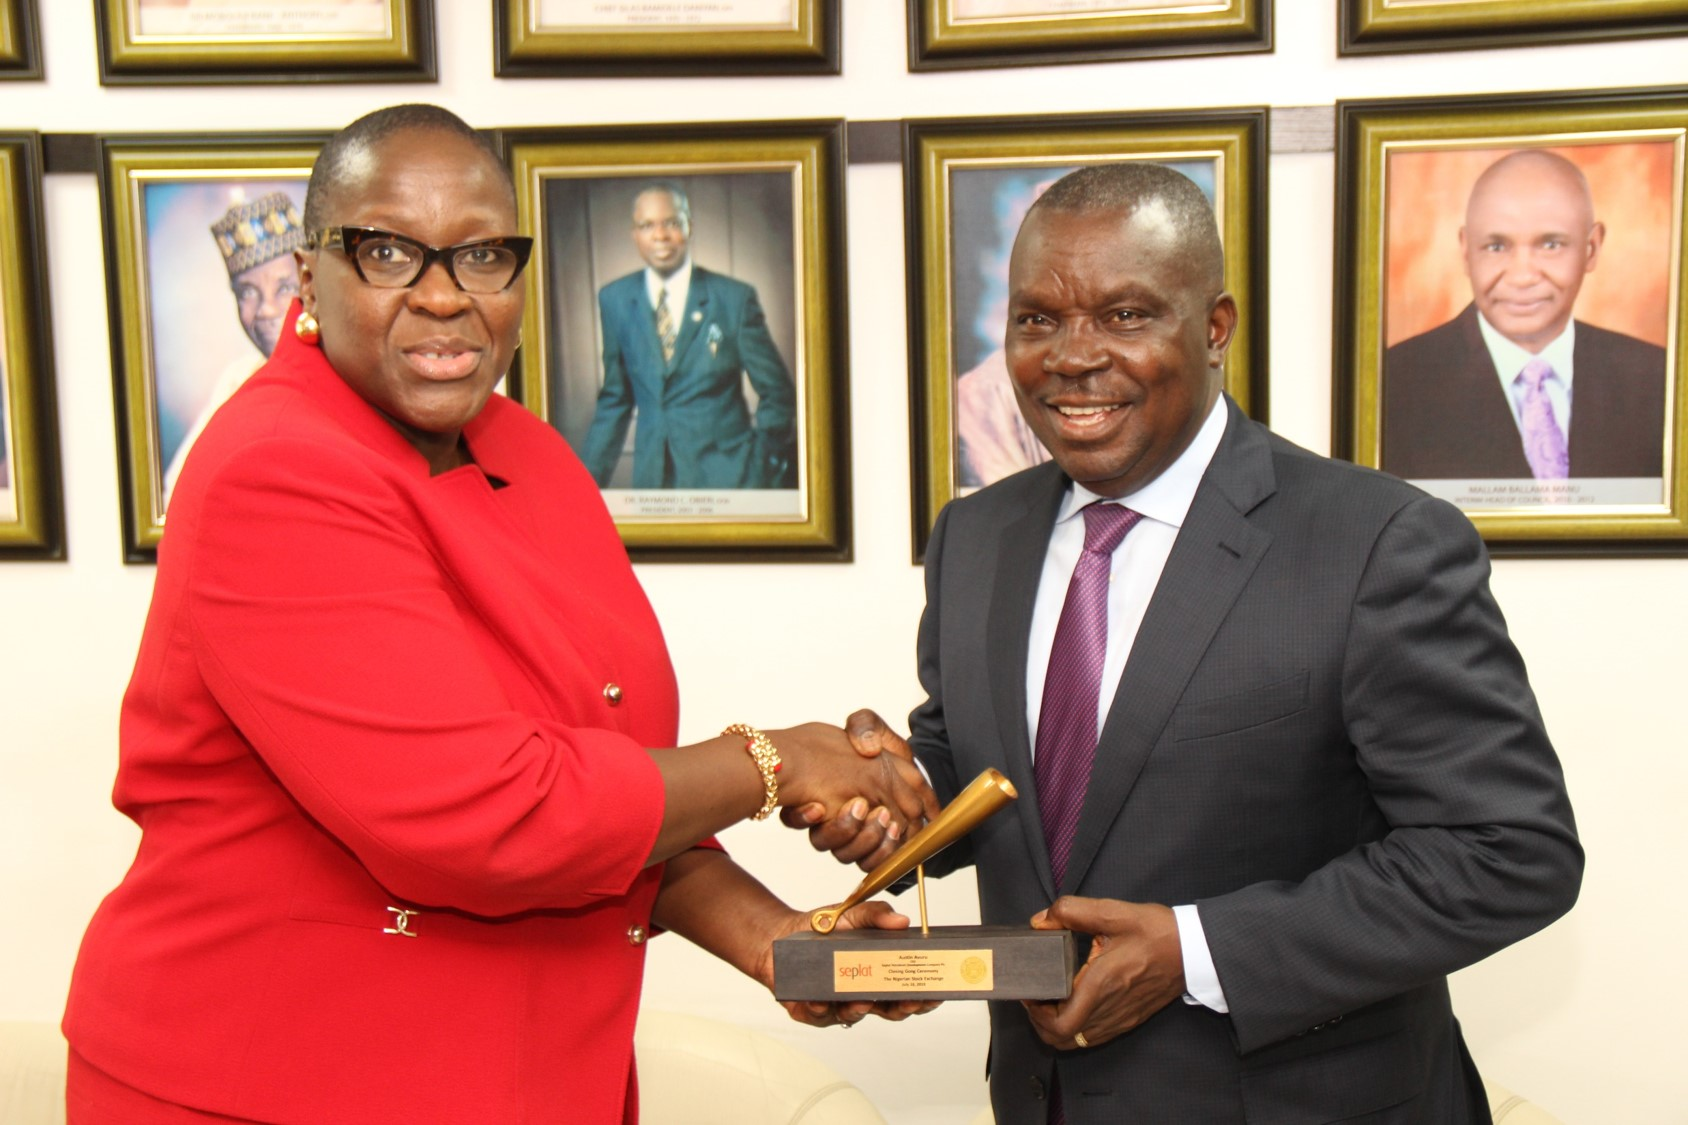 L – R show Ms. Tinuade Awe, Executive Director, Regulation, The Nigerian Stock Exchange (NSE) presenting a replica of the closing gong to Austin Avuru, Chief Executive Officer, Seplat Petroleum Development Company Plc during a Facts Behind the Figures presentation at the Exchange today